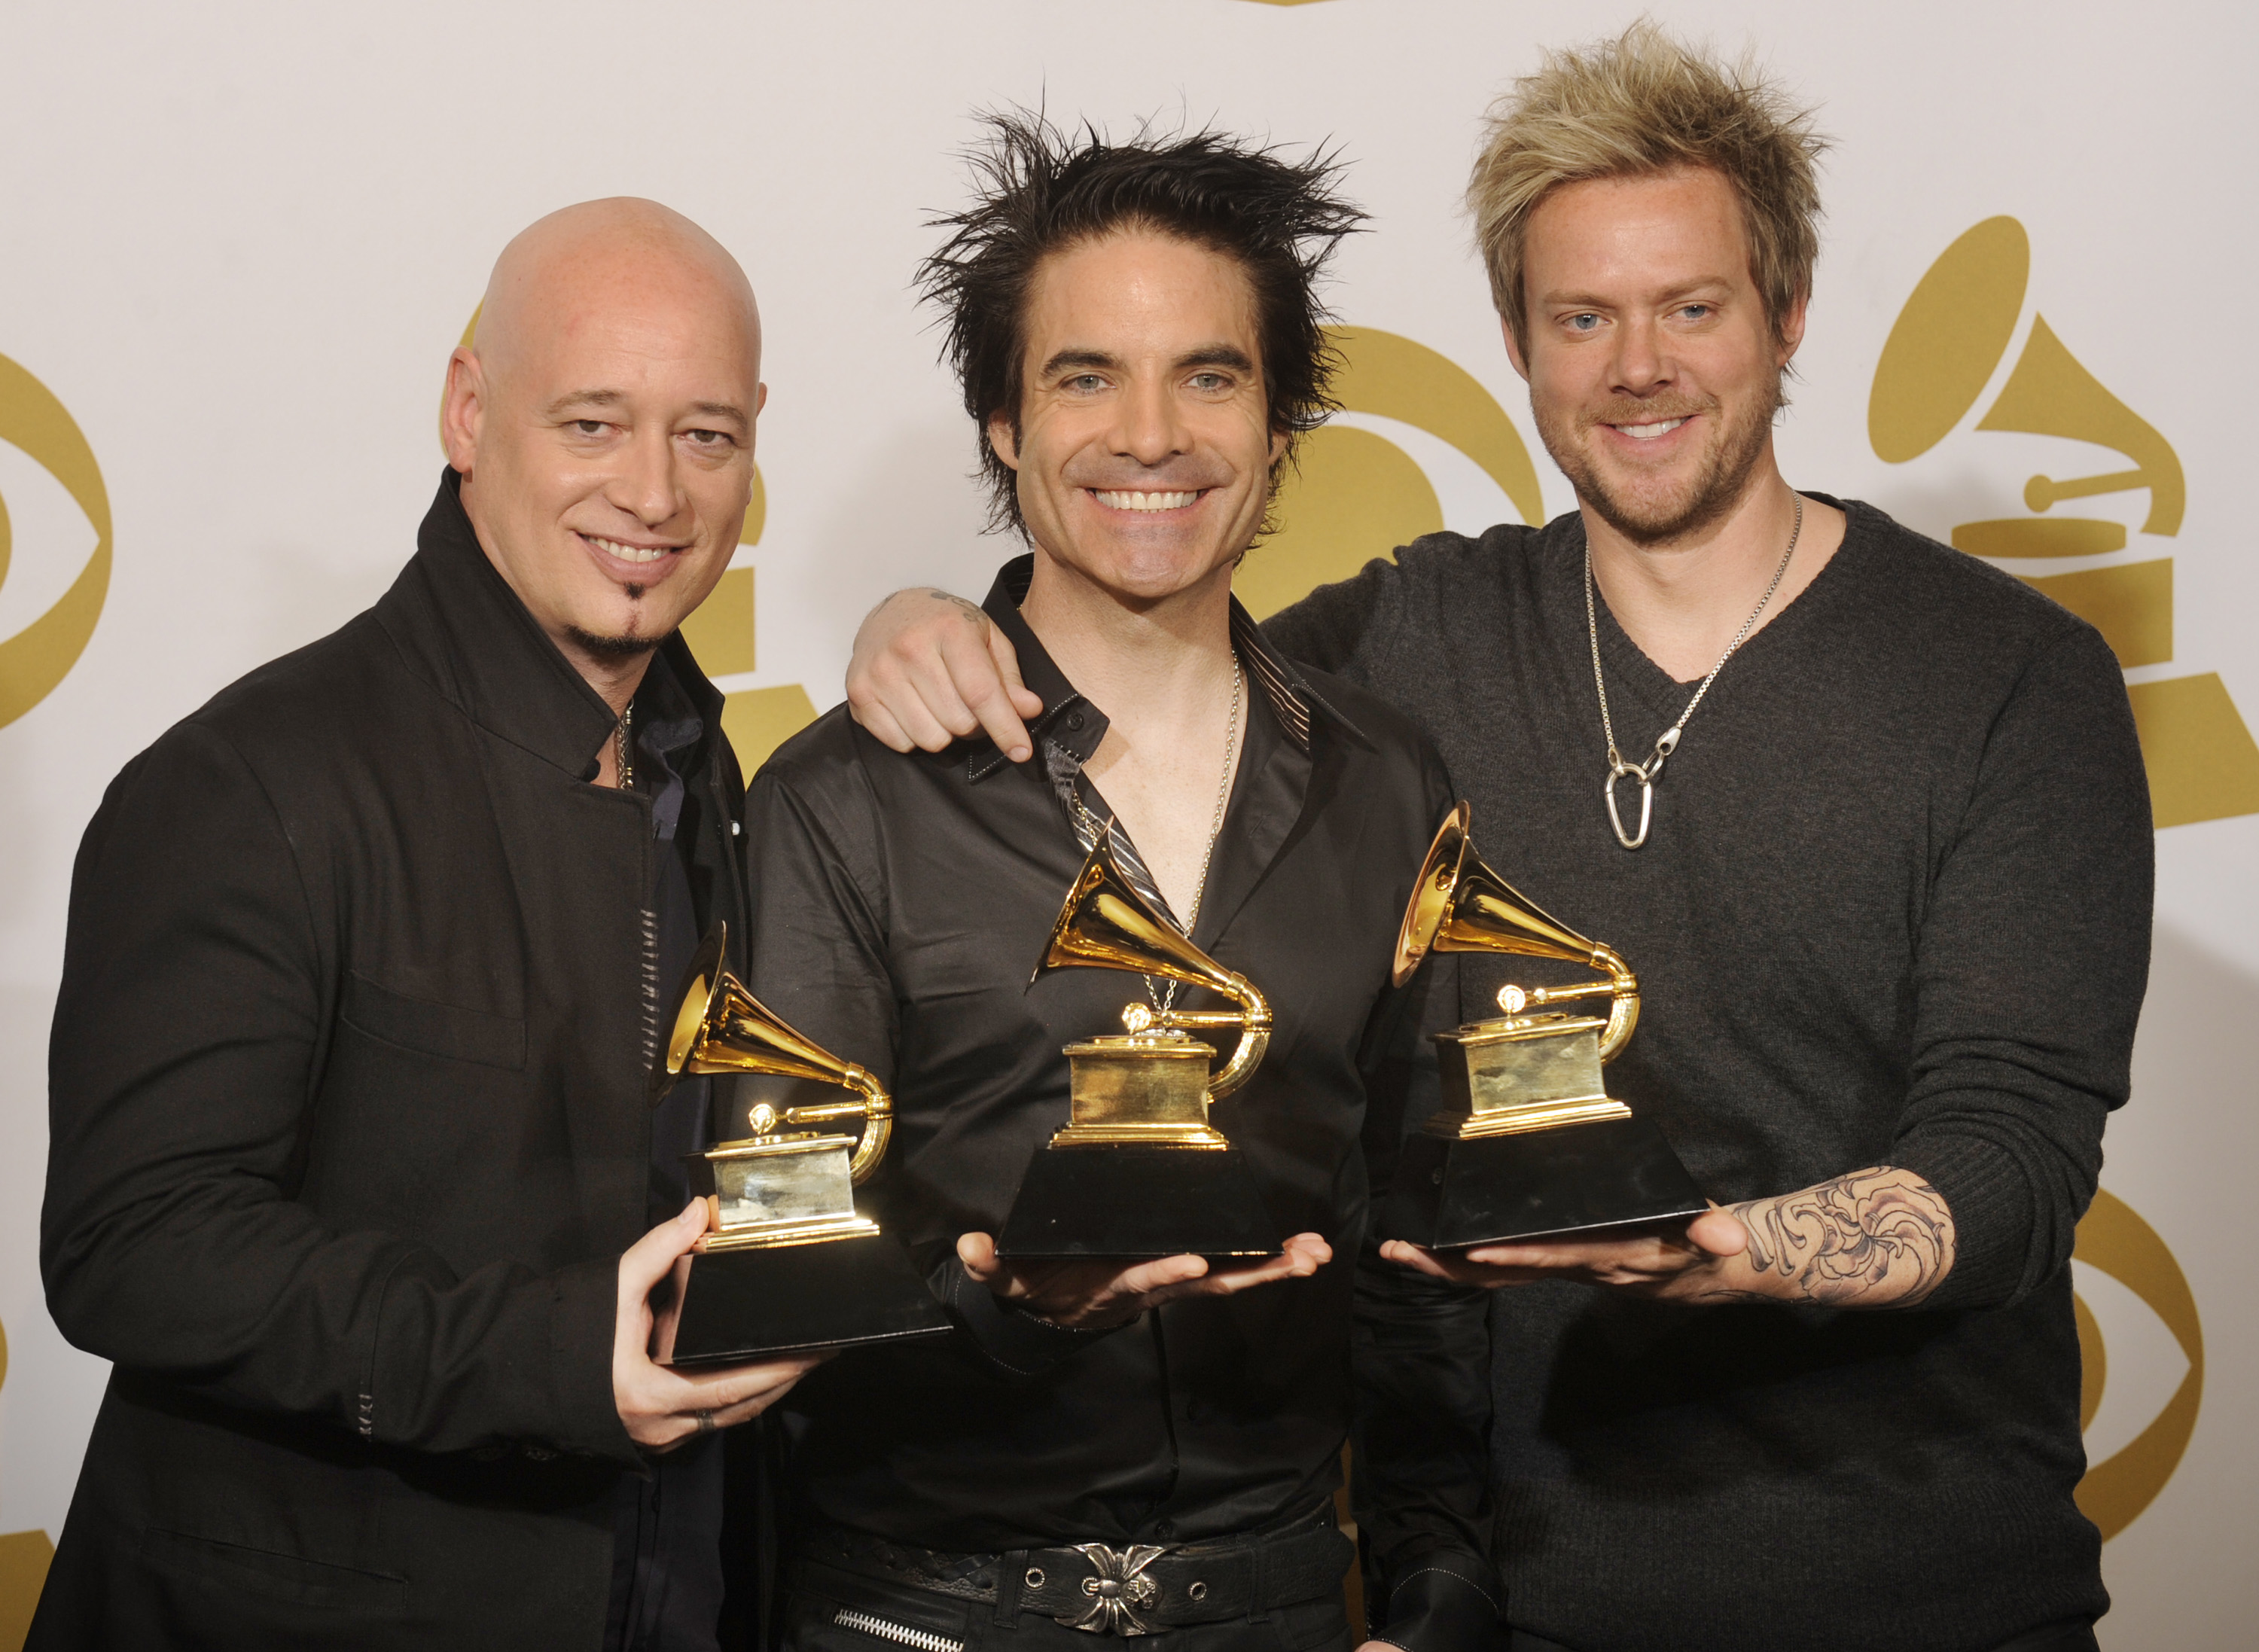 The band Train hold their award for Best Pop Performance By A Duo Or Group With Vocals at the 53rd Grammy Awards in Los Angeles